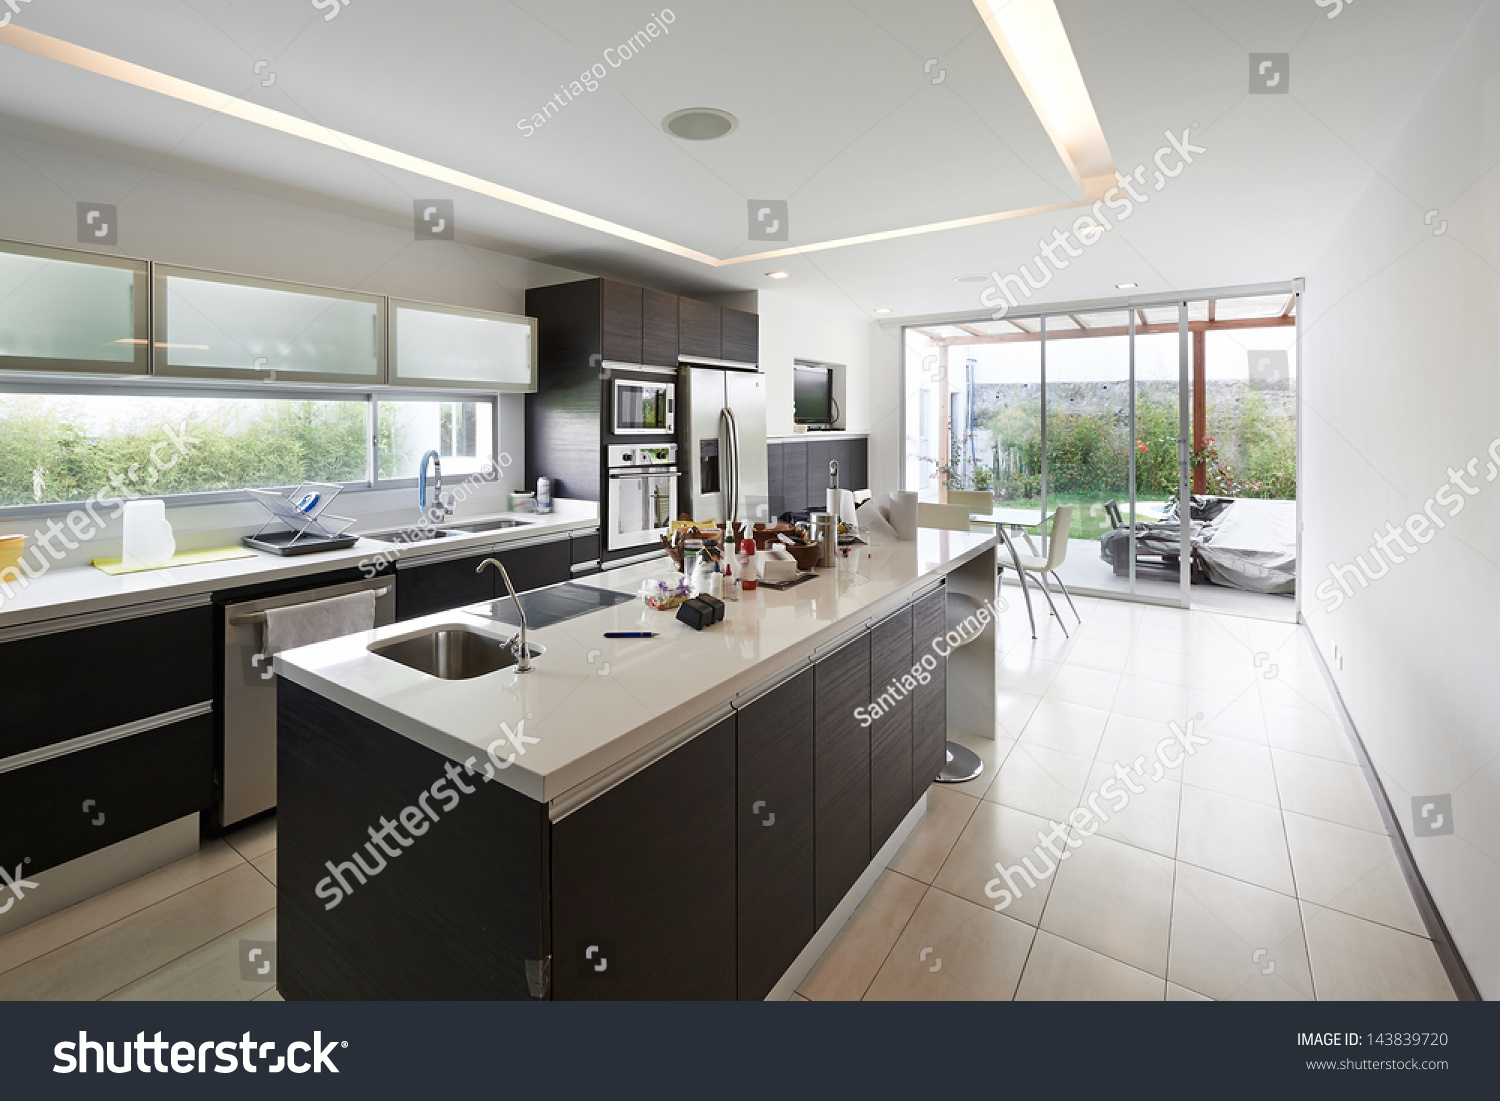 Interior design modern big kitchen stock photo 143839720 shutterstock Modern houses interior kitchen